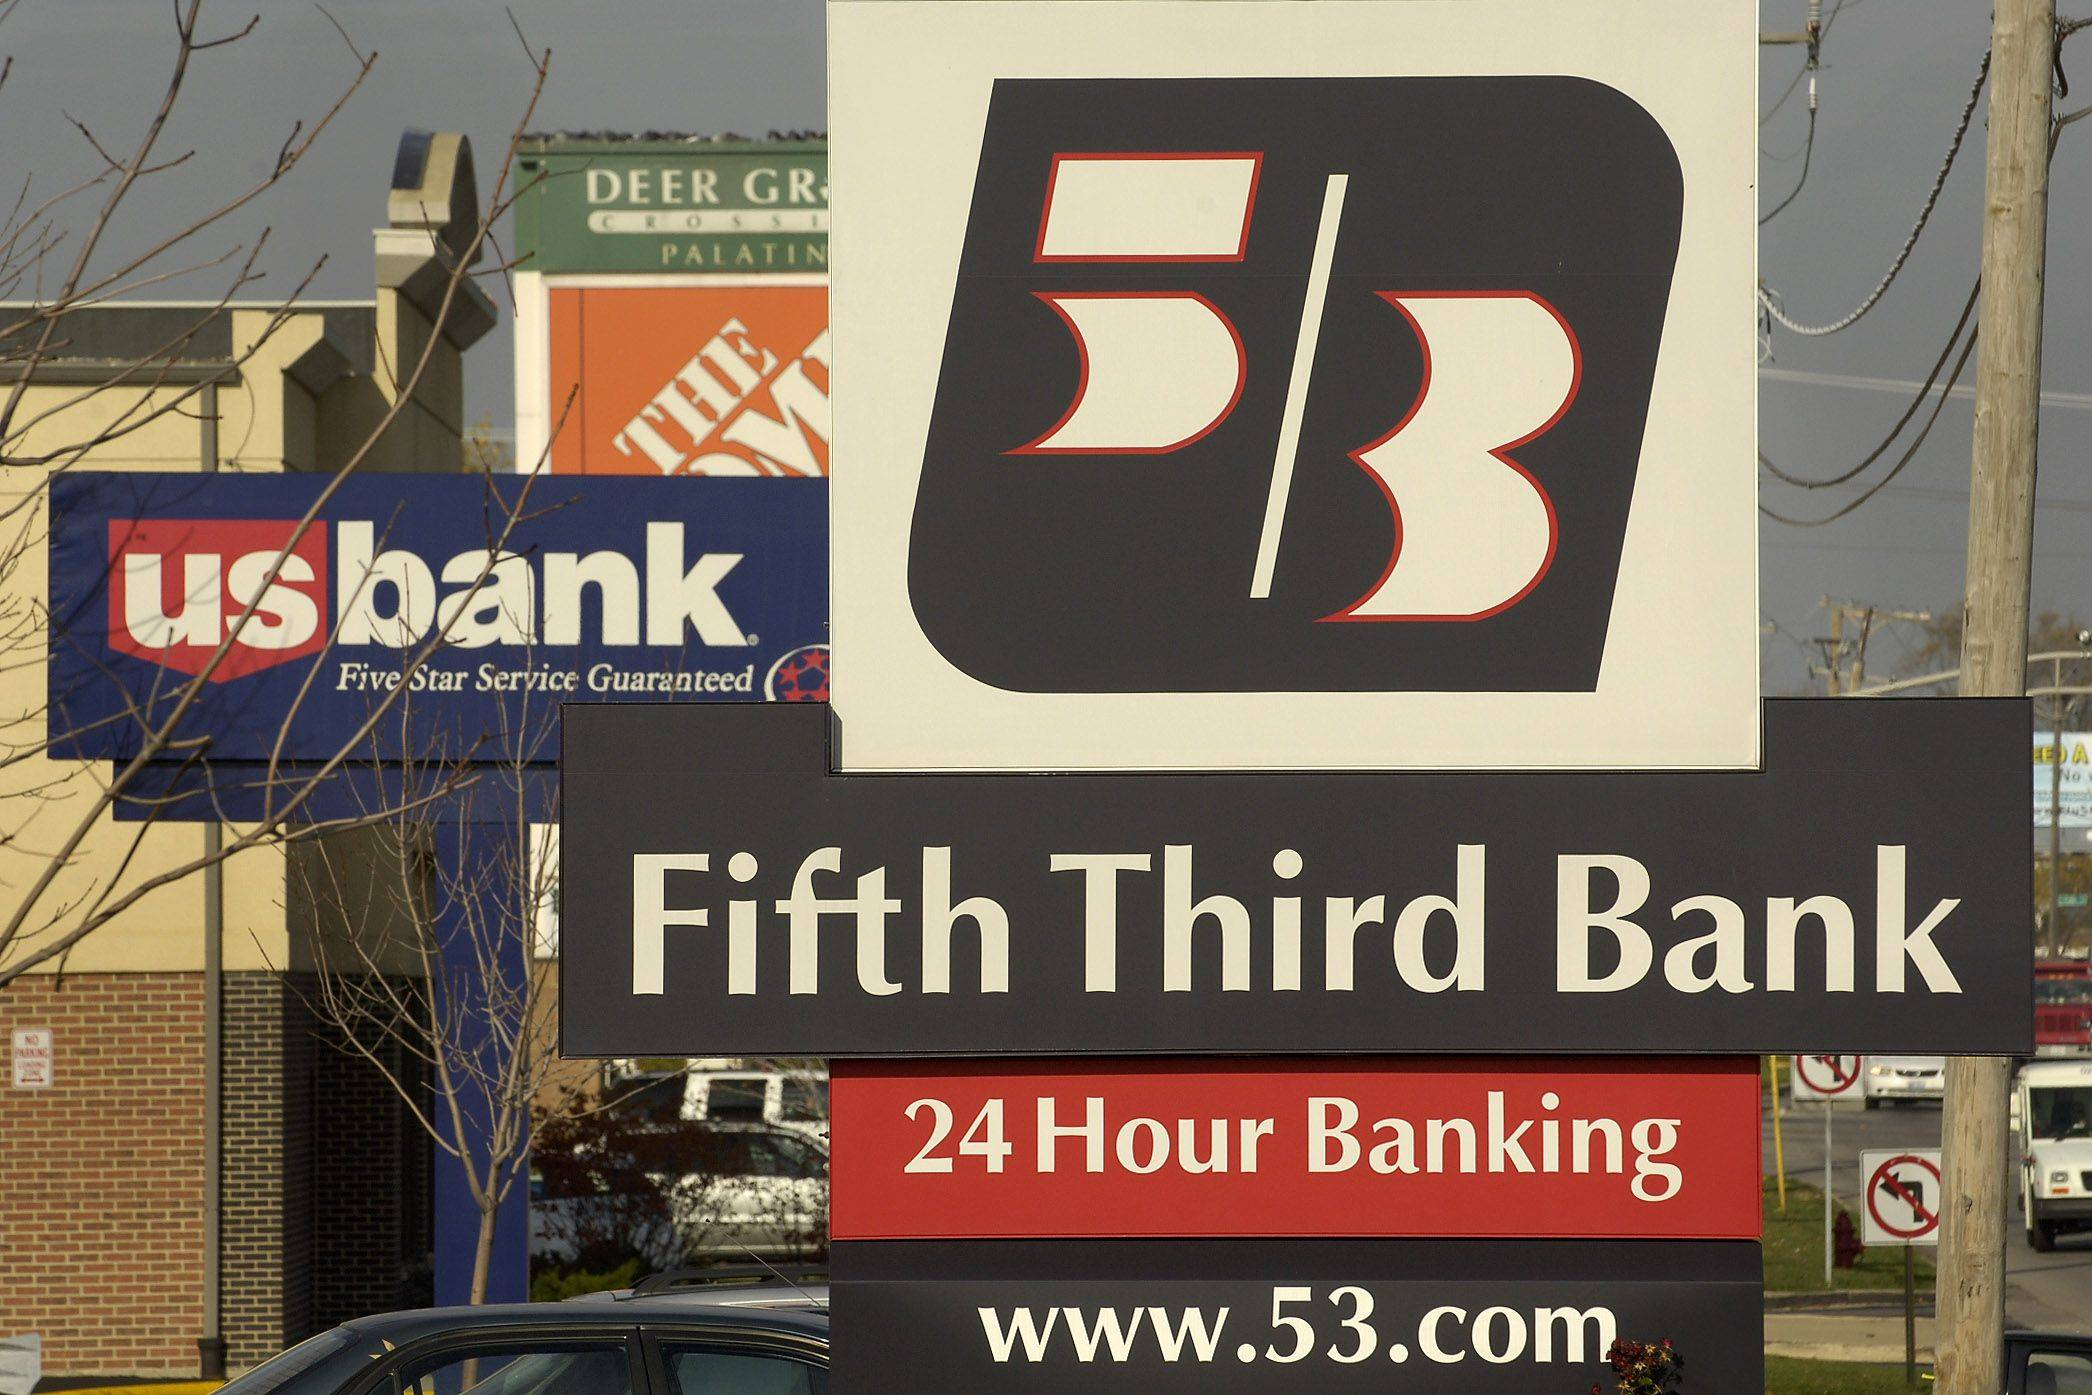 Fifth Third Bank, which operates 1,300 branches in the Midwest and South, is offering a new card that's linked to both a checking and credit card account. The Cincinnati-based bank says the Duo MasterCard is the first to offer the split functionality.